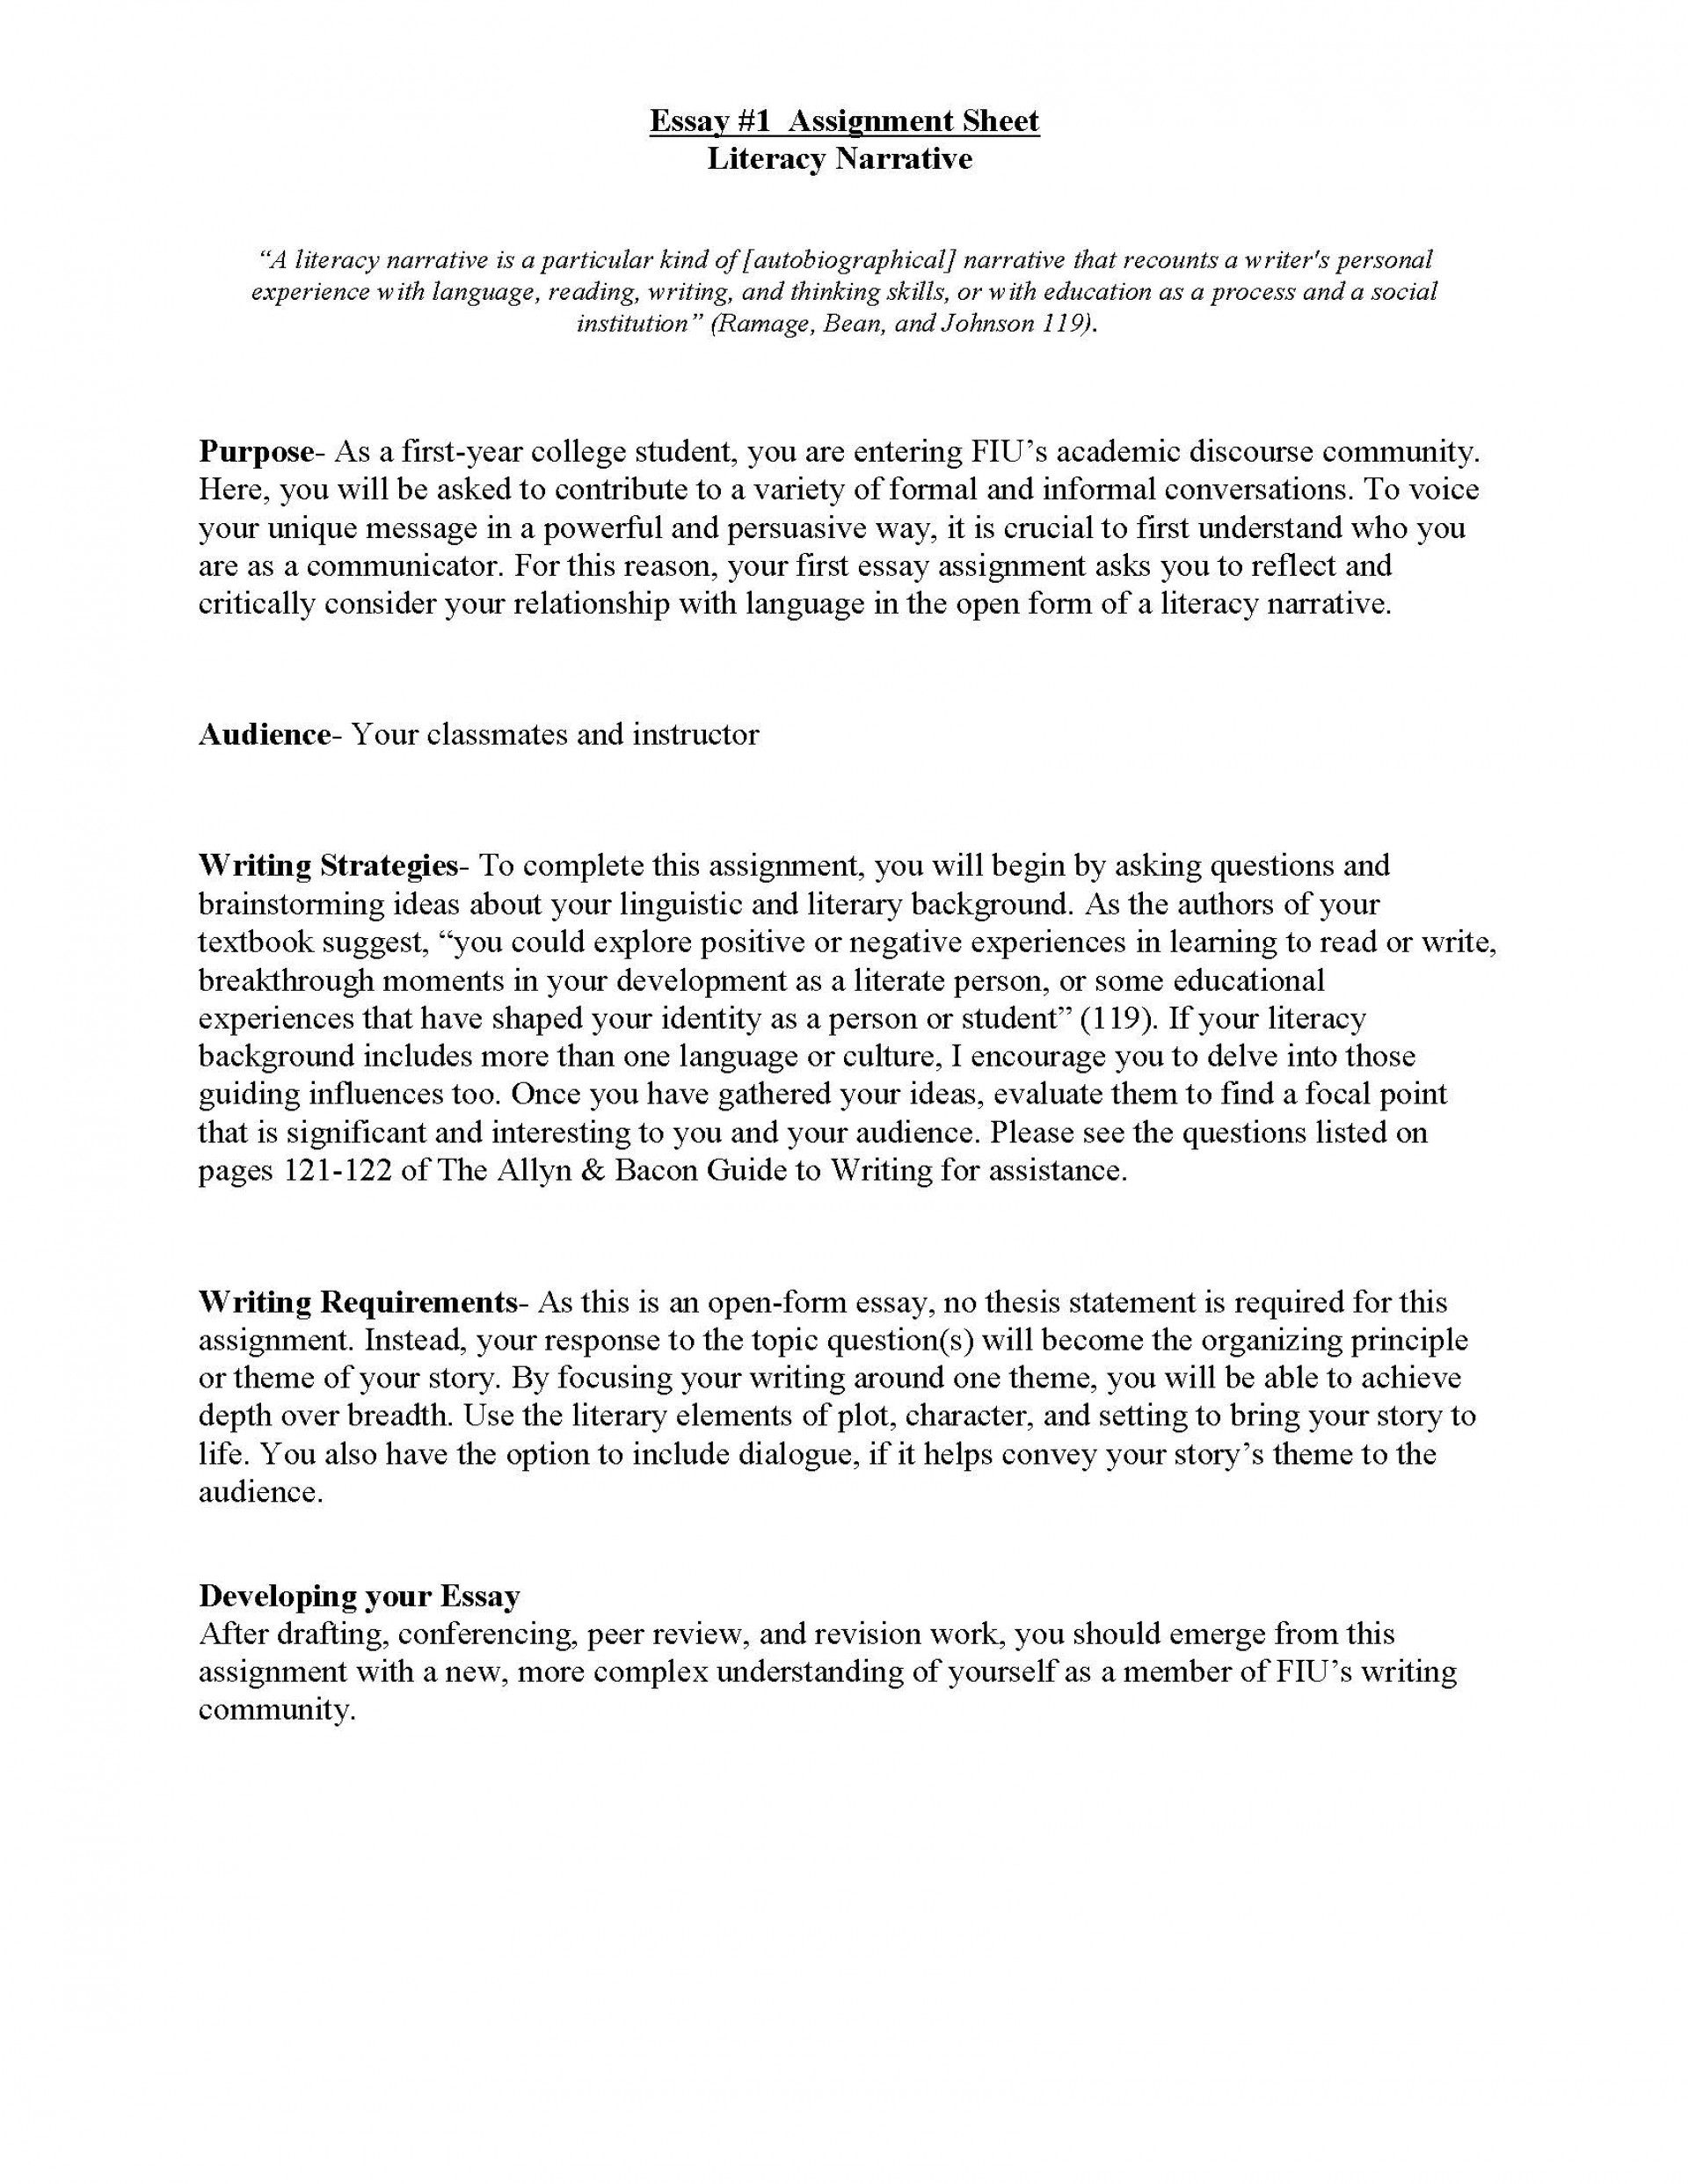 013 Essay Example Literacy Narrative Unitssignment Spring 2012 Page 1 Writing Amazing A Pdf Sample High School Personal Outline 1920